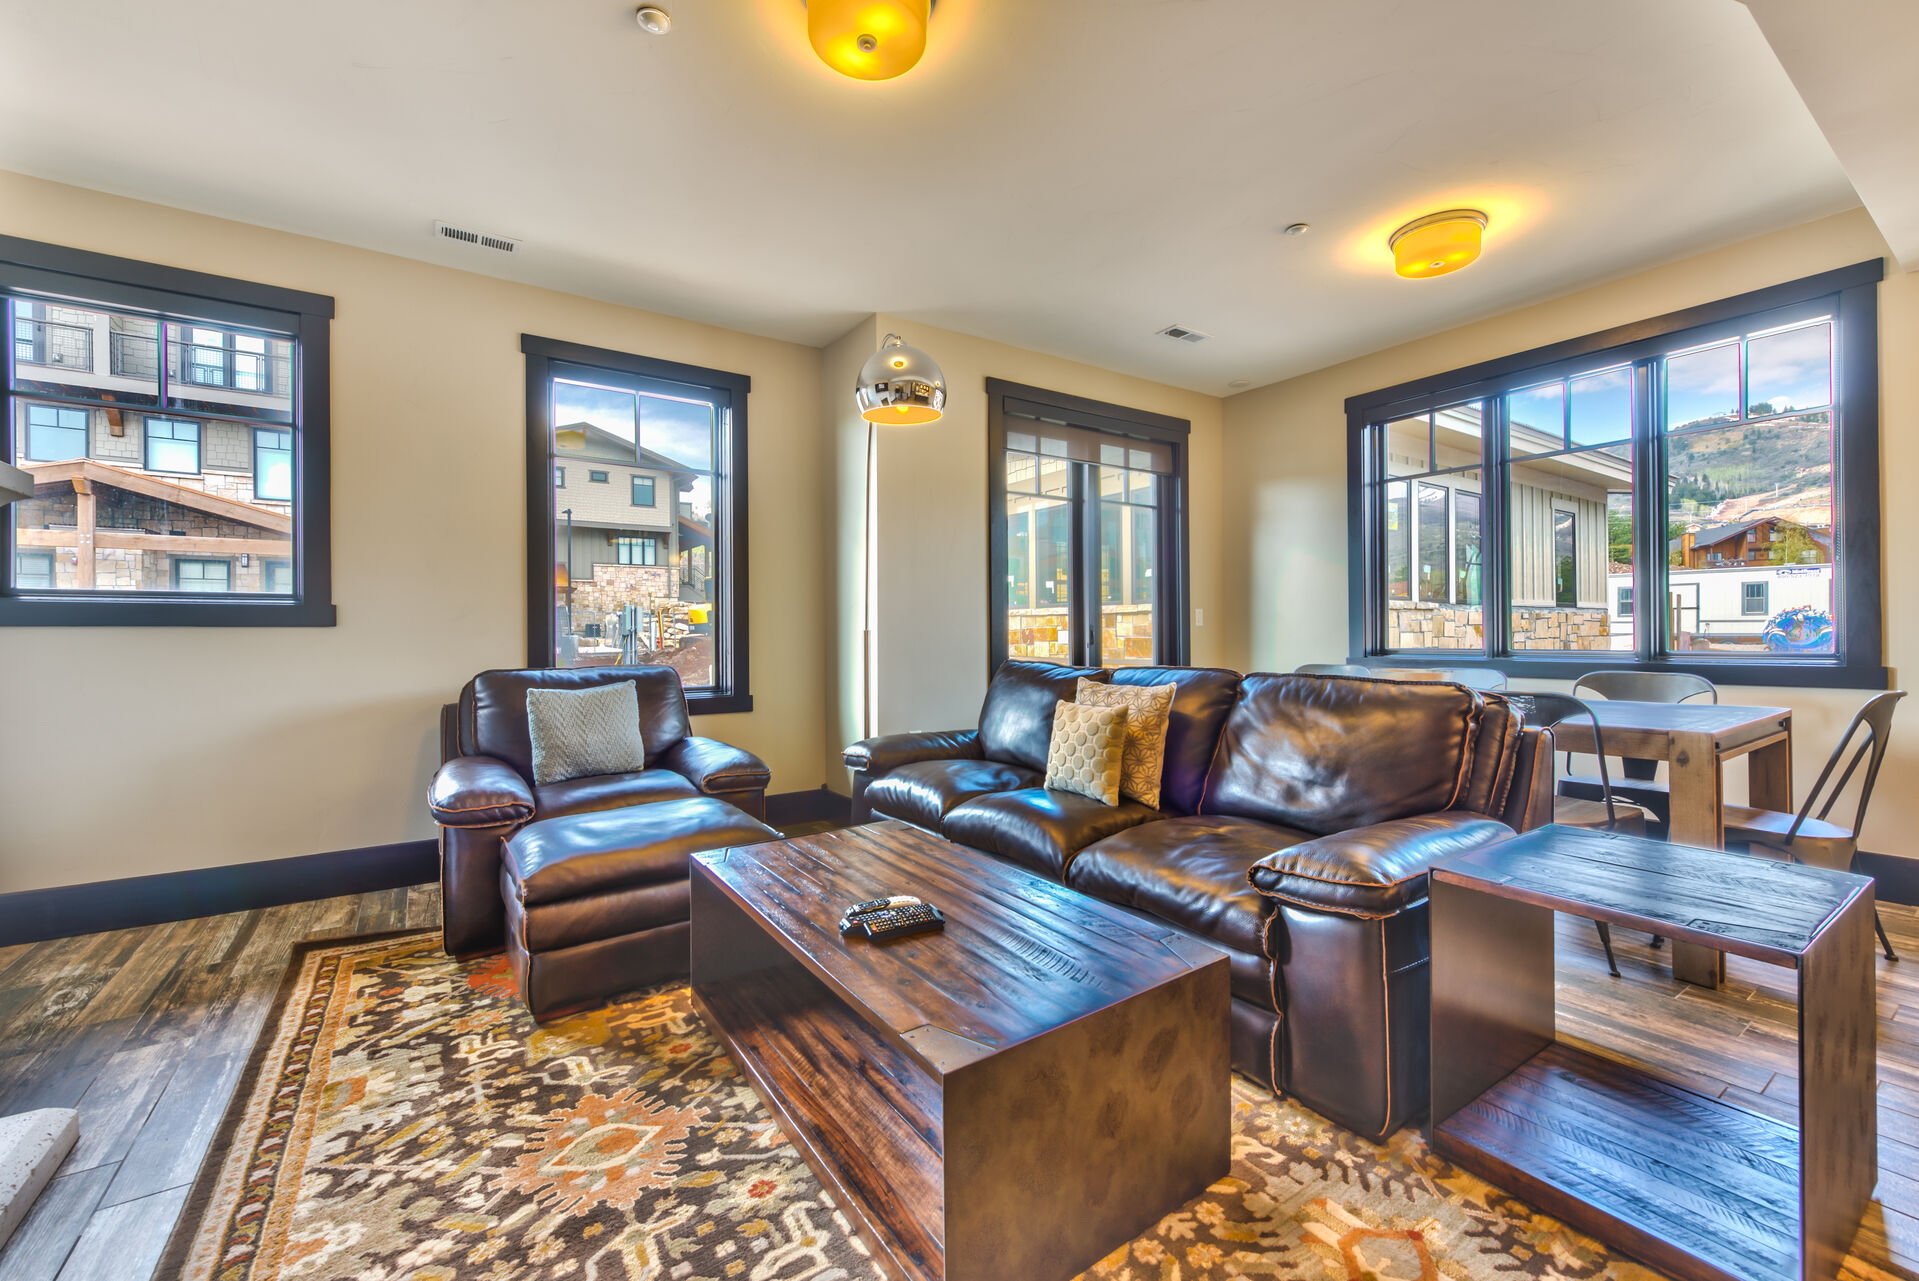 Living Room with a Gas Fireplace, 55 inch HD 4K Smart TV/Direct TV, Private Deck and a Full Bathroom with Heated Floors